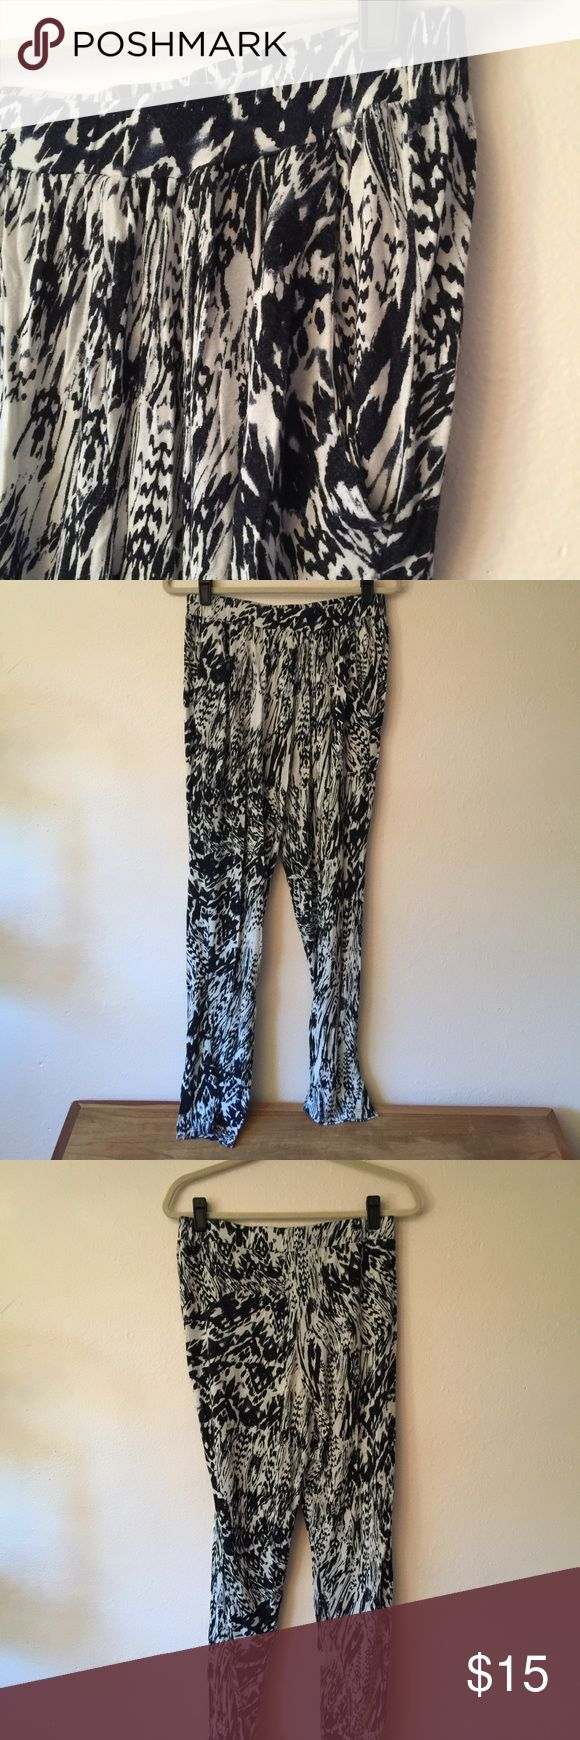 Nordstrom Willow & Clay Boho Print Harem Pant The MOST COMFY EVER. Super soft with Boho print, size medium. Great gently used condition. Wider at hips and thighs, tapered slightly down to ankles. With pockets! Stock photo for fit reference, since they don't photograph well on the hanger. Willow & Clay Pants Leggings